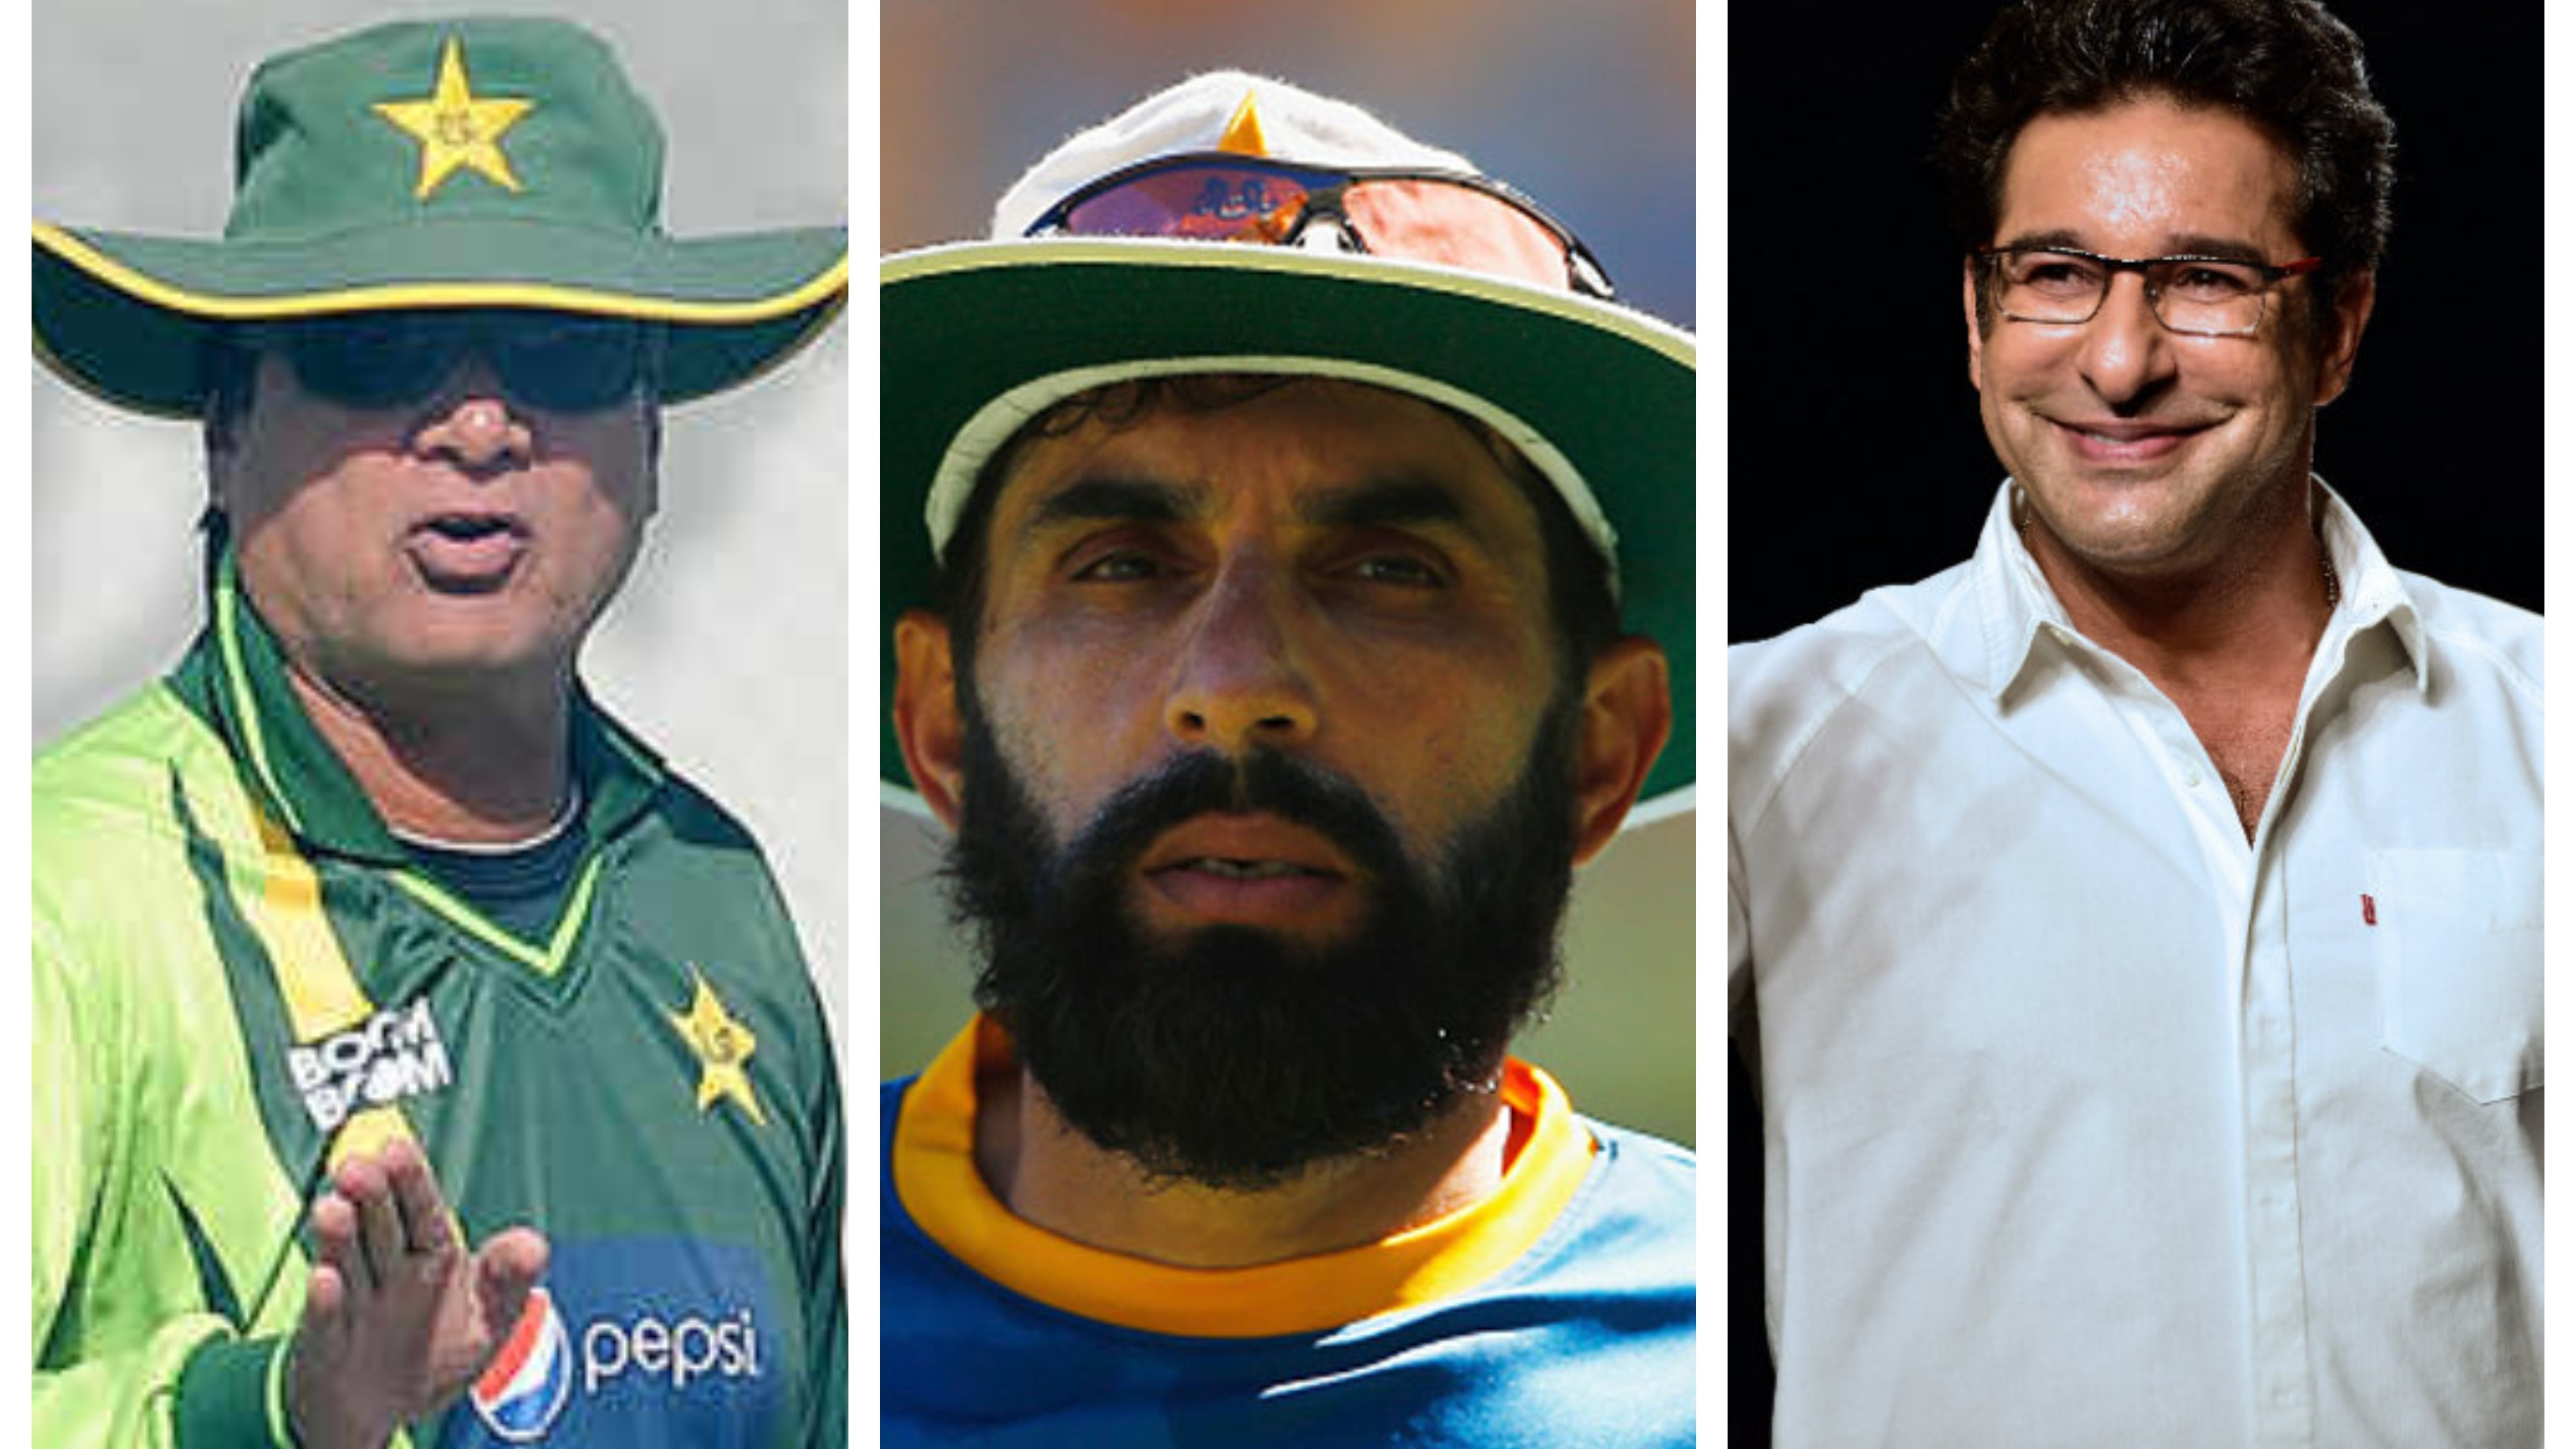 PCB appoints Misbah, Akram, Mohsin as part of its cricket committee